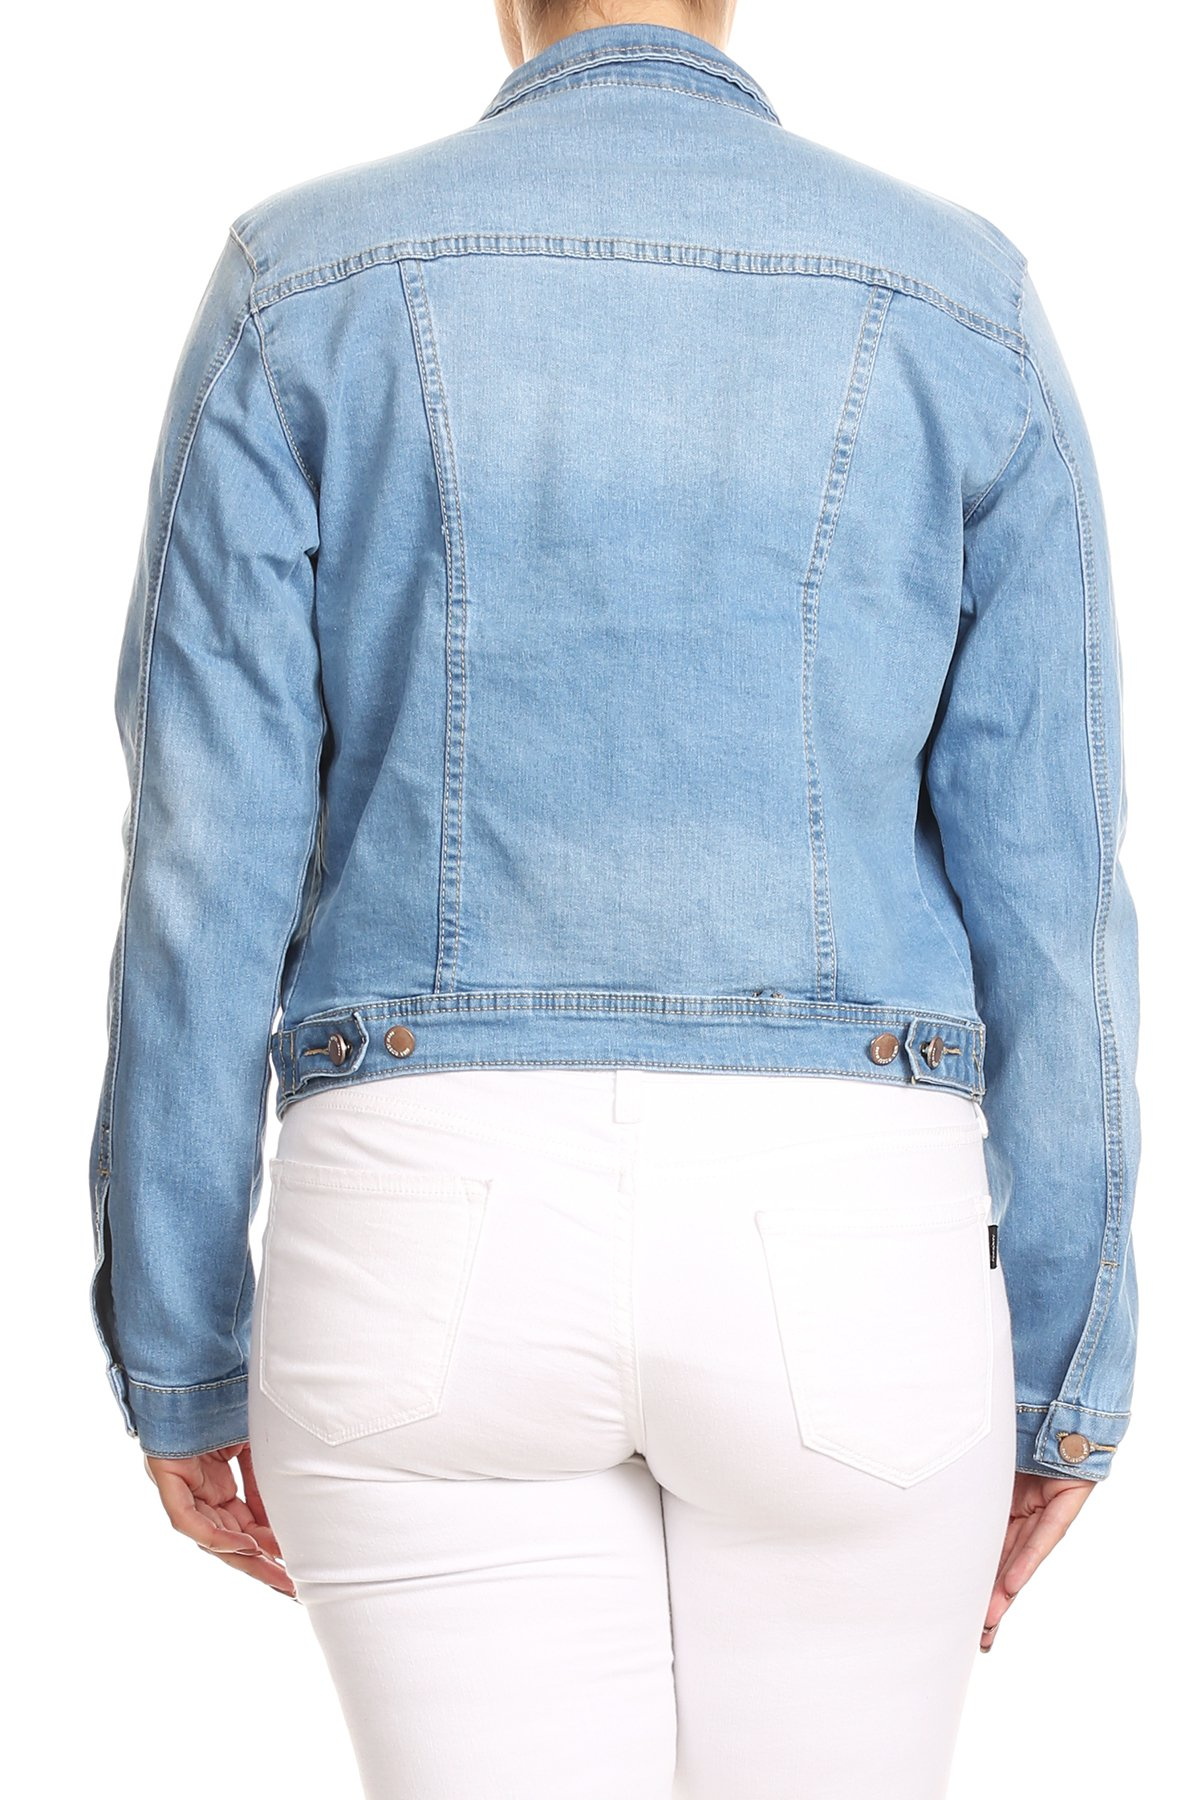 Women-039-s-Premium-Denim-Jackets-Long-Sleeve-Jean-Coats thumbnail 8